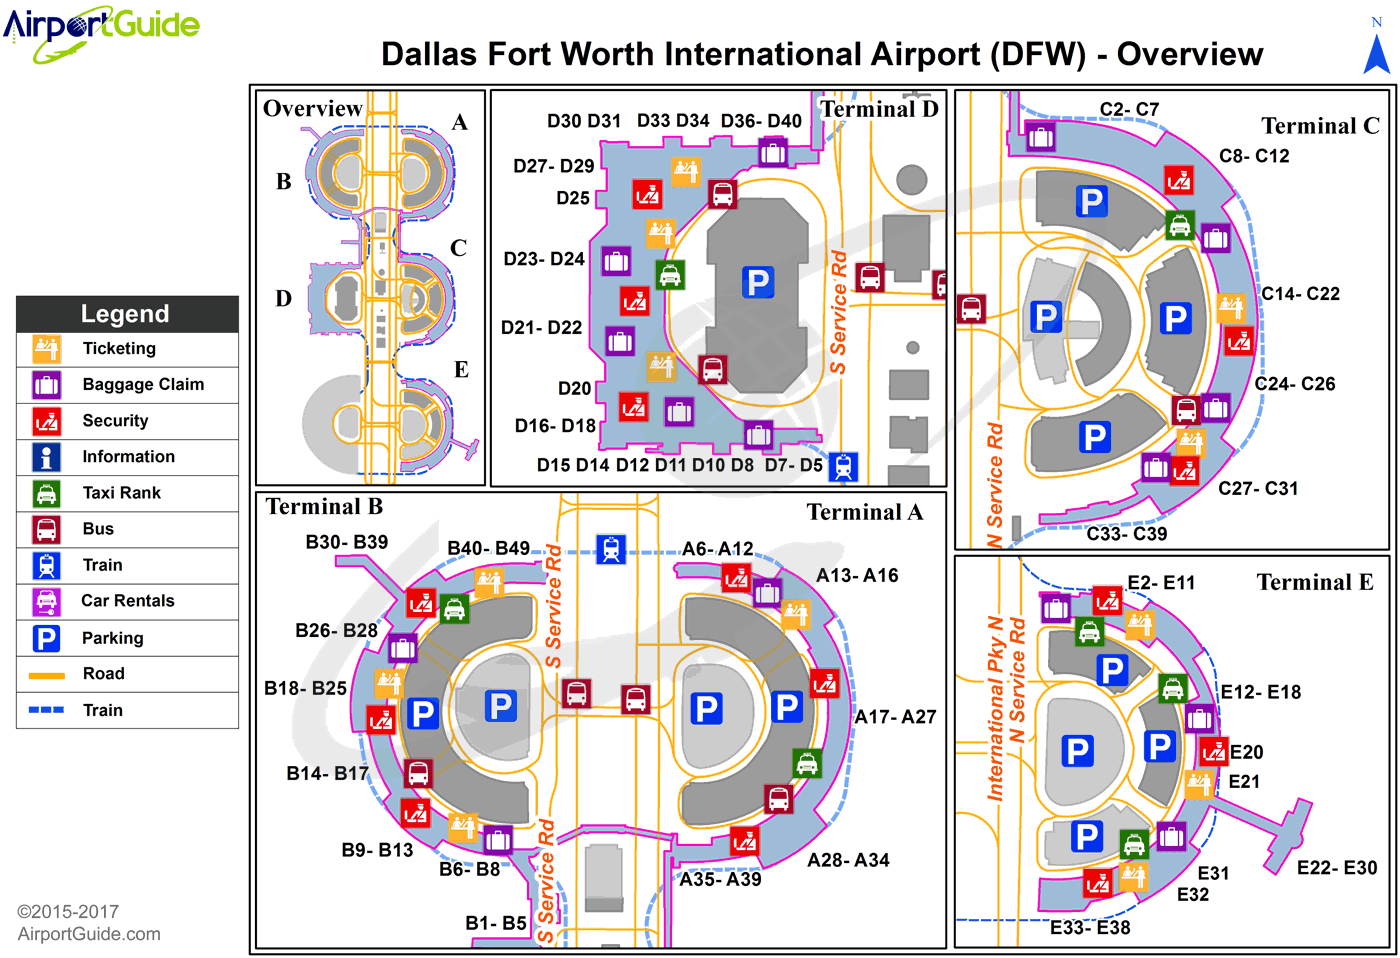 Dallas-Fort Worth - Dallas-Fort Worth International (DFW) Airport Terminal Map - Overview